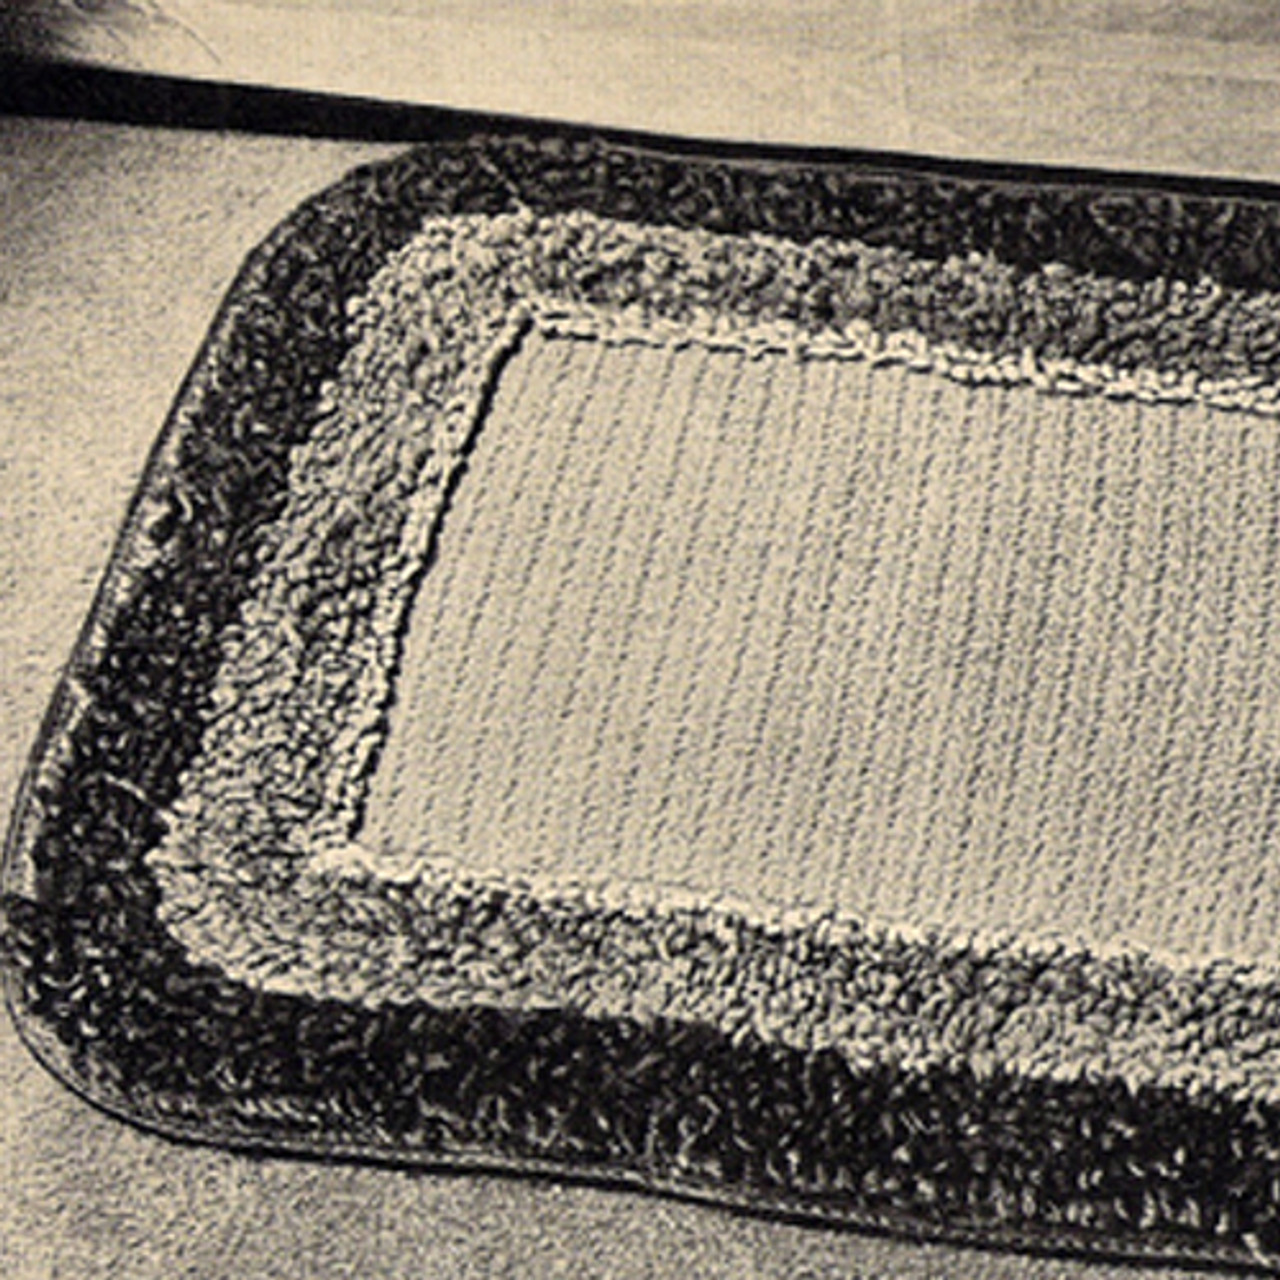 Vintage Crochet Oblong Rug pattern with Two Color Loop Stitch Border